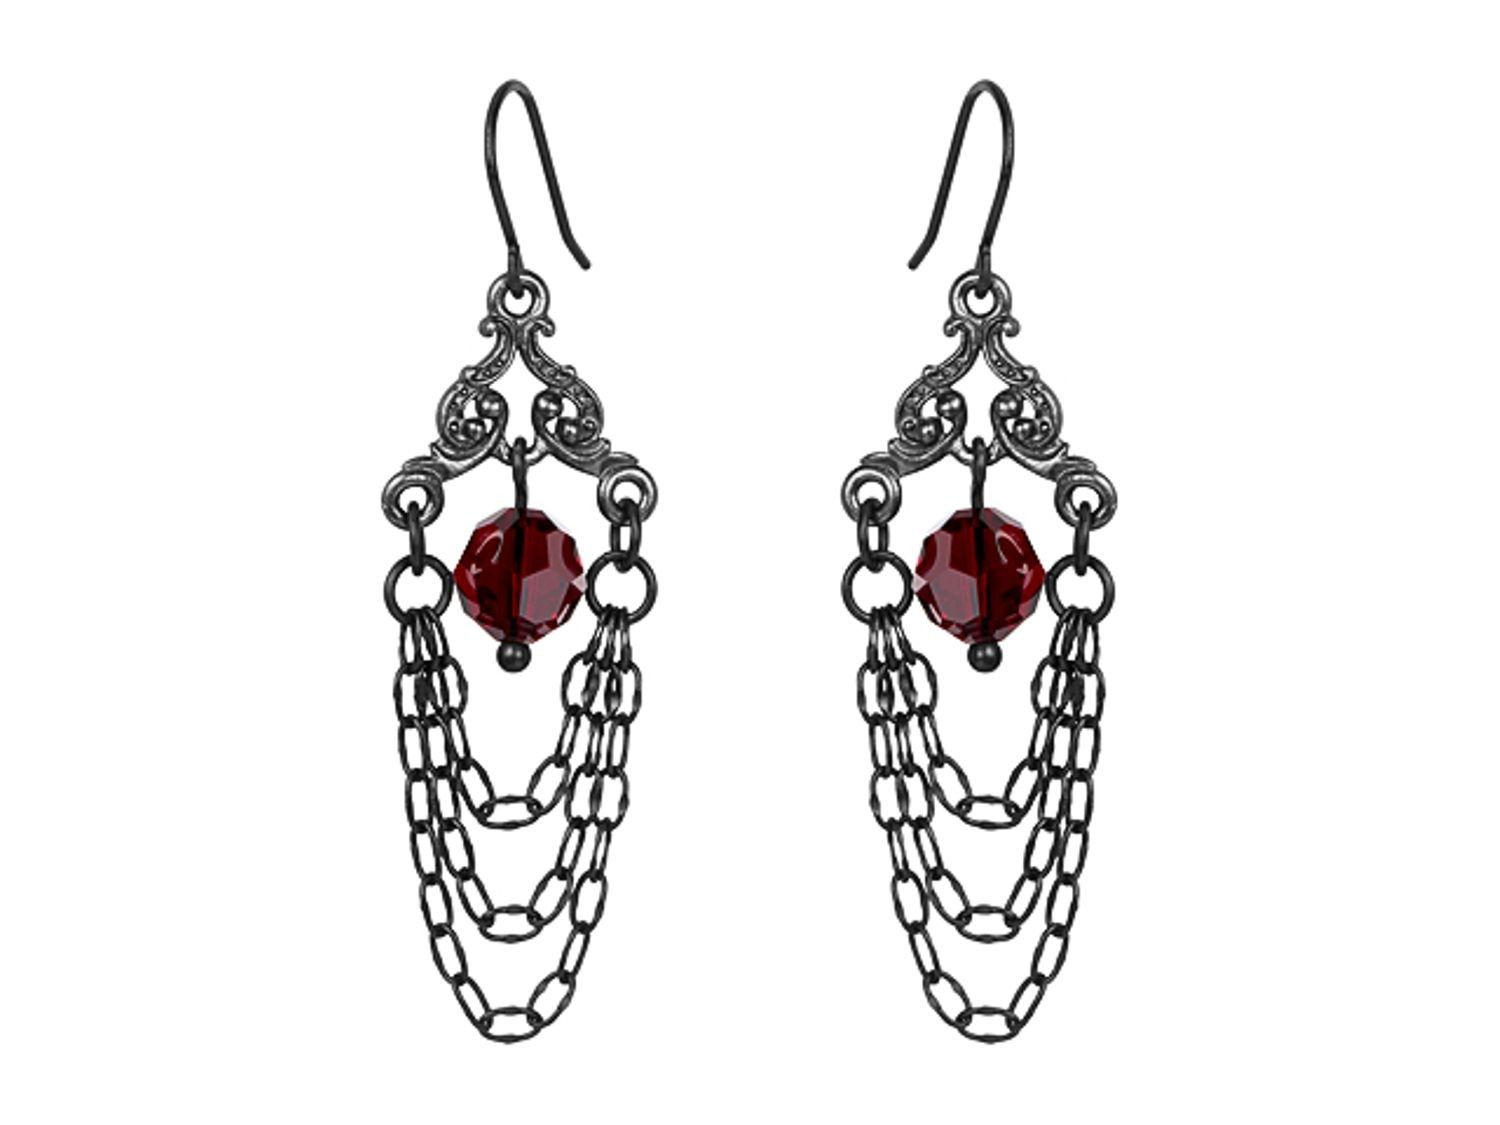 Get This Dark Allure Earrings Kit At Artbeads A